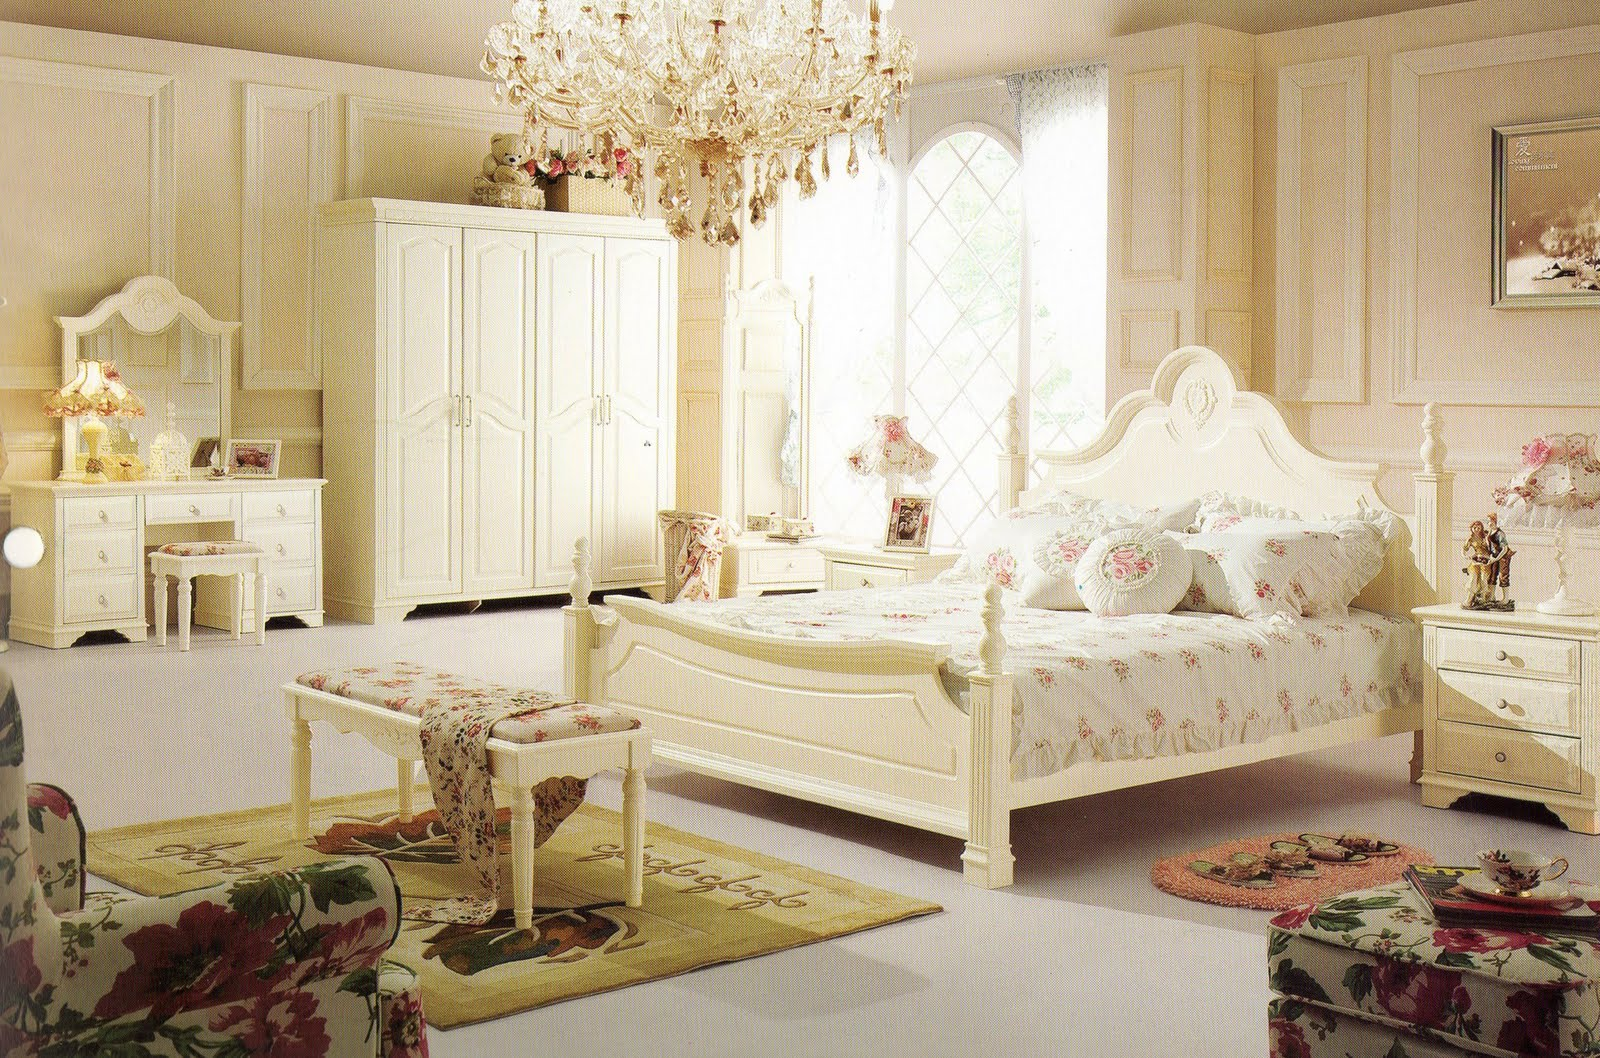 Elegant bedroom furniture bedroom furniture high resolution for Chic bedroom ideas women